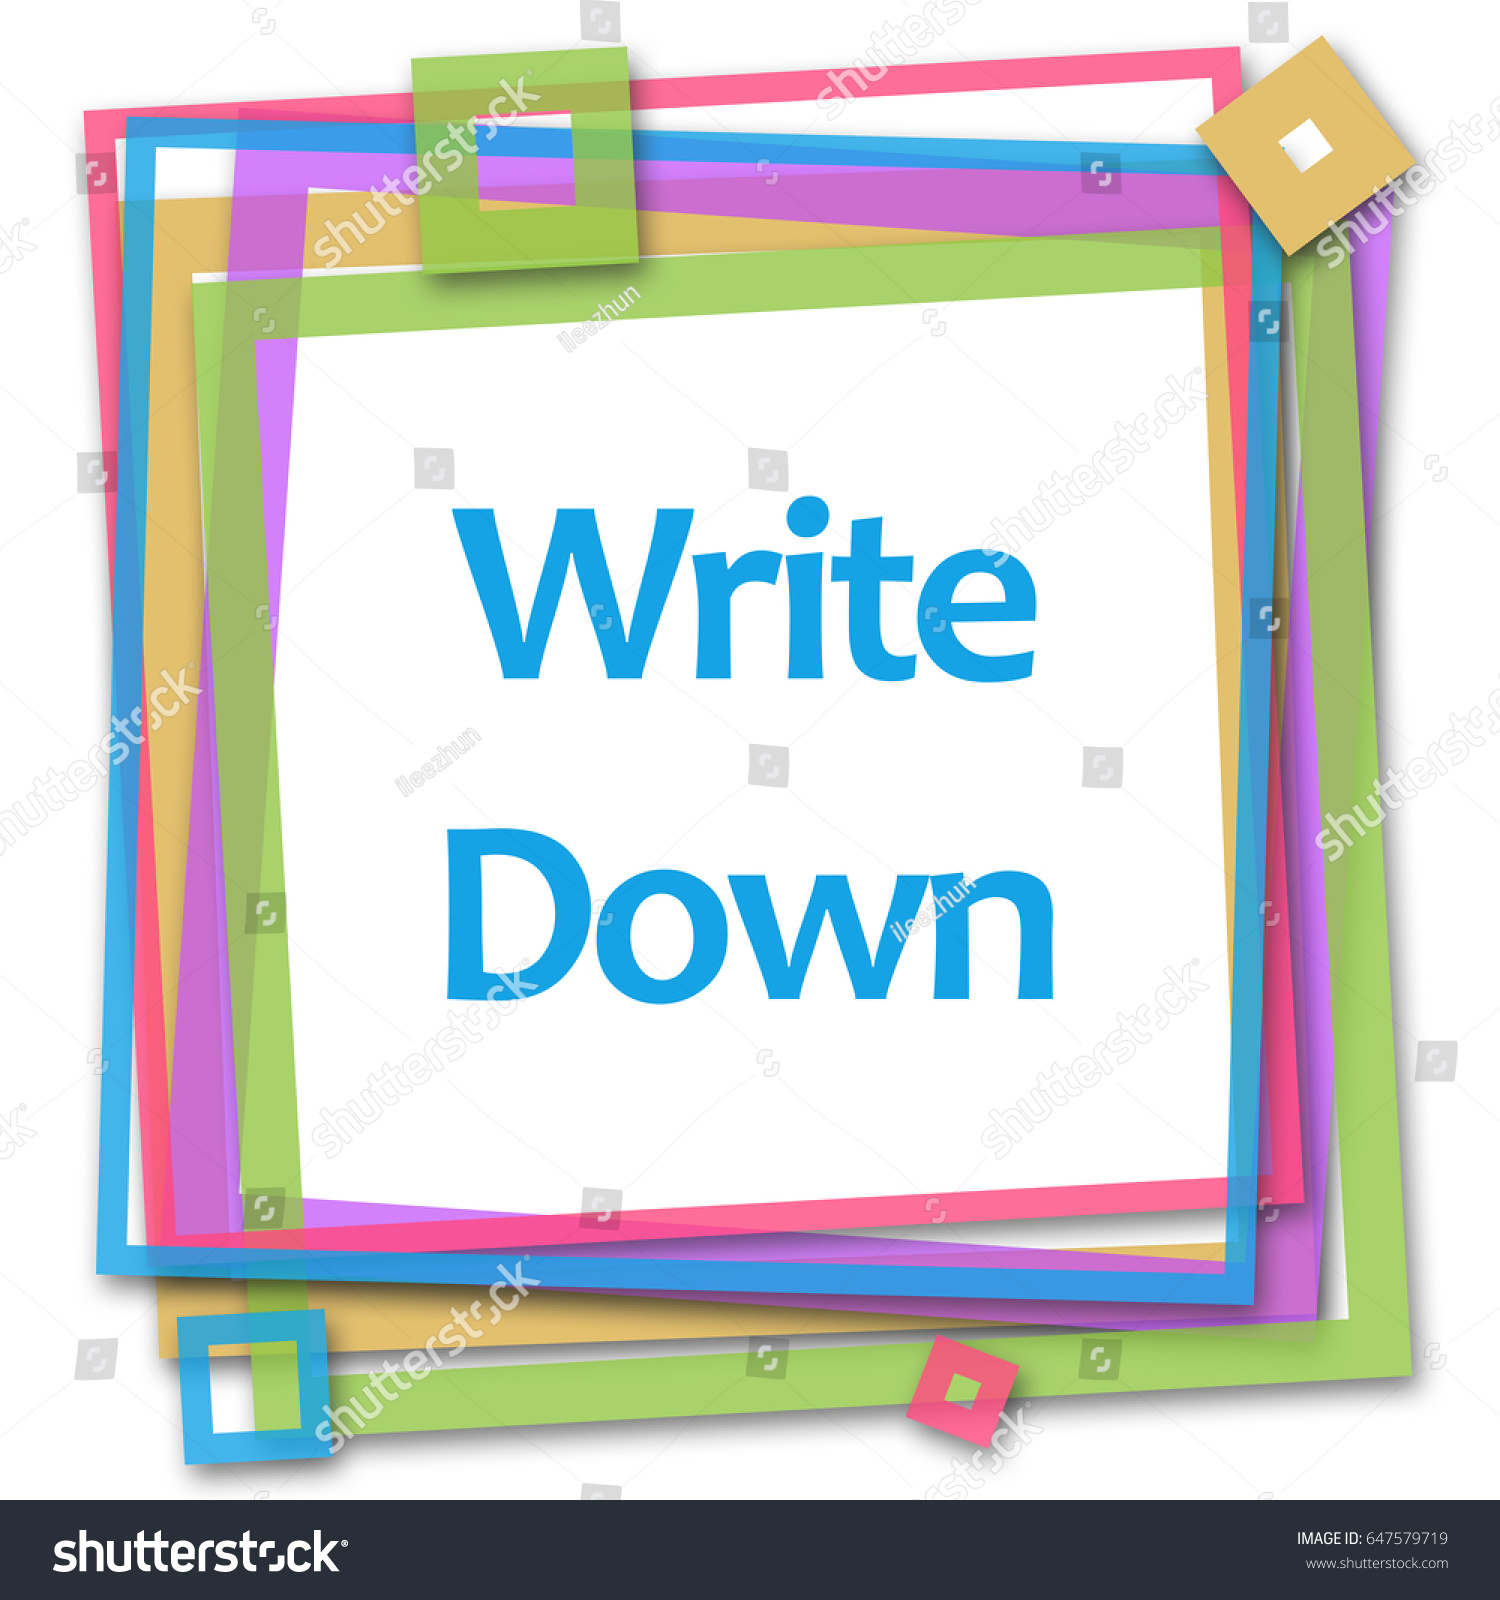 Write Down Colorful Frame Stock Illustration 647579719 - Shutterstock